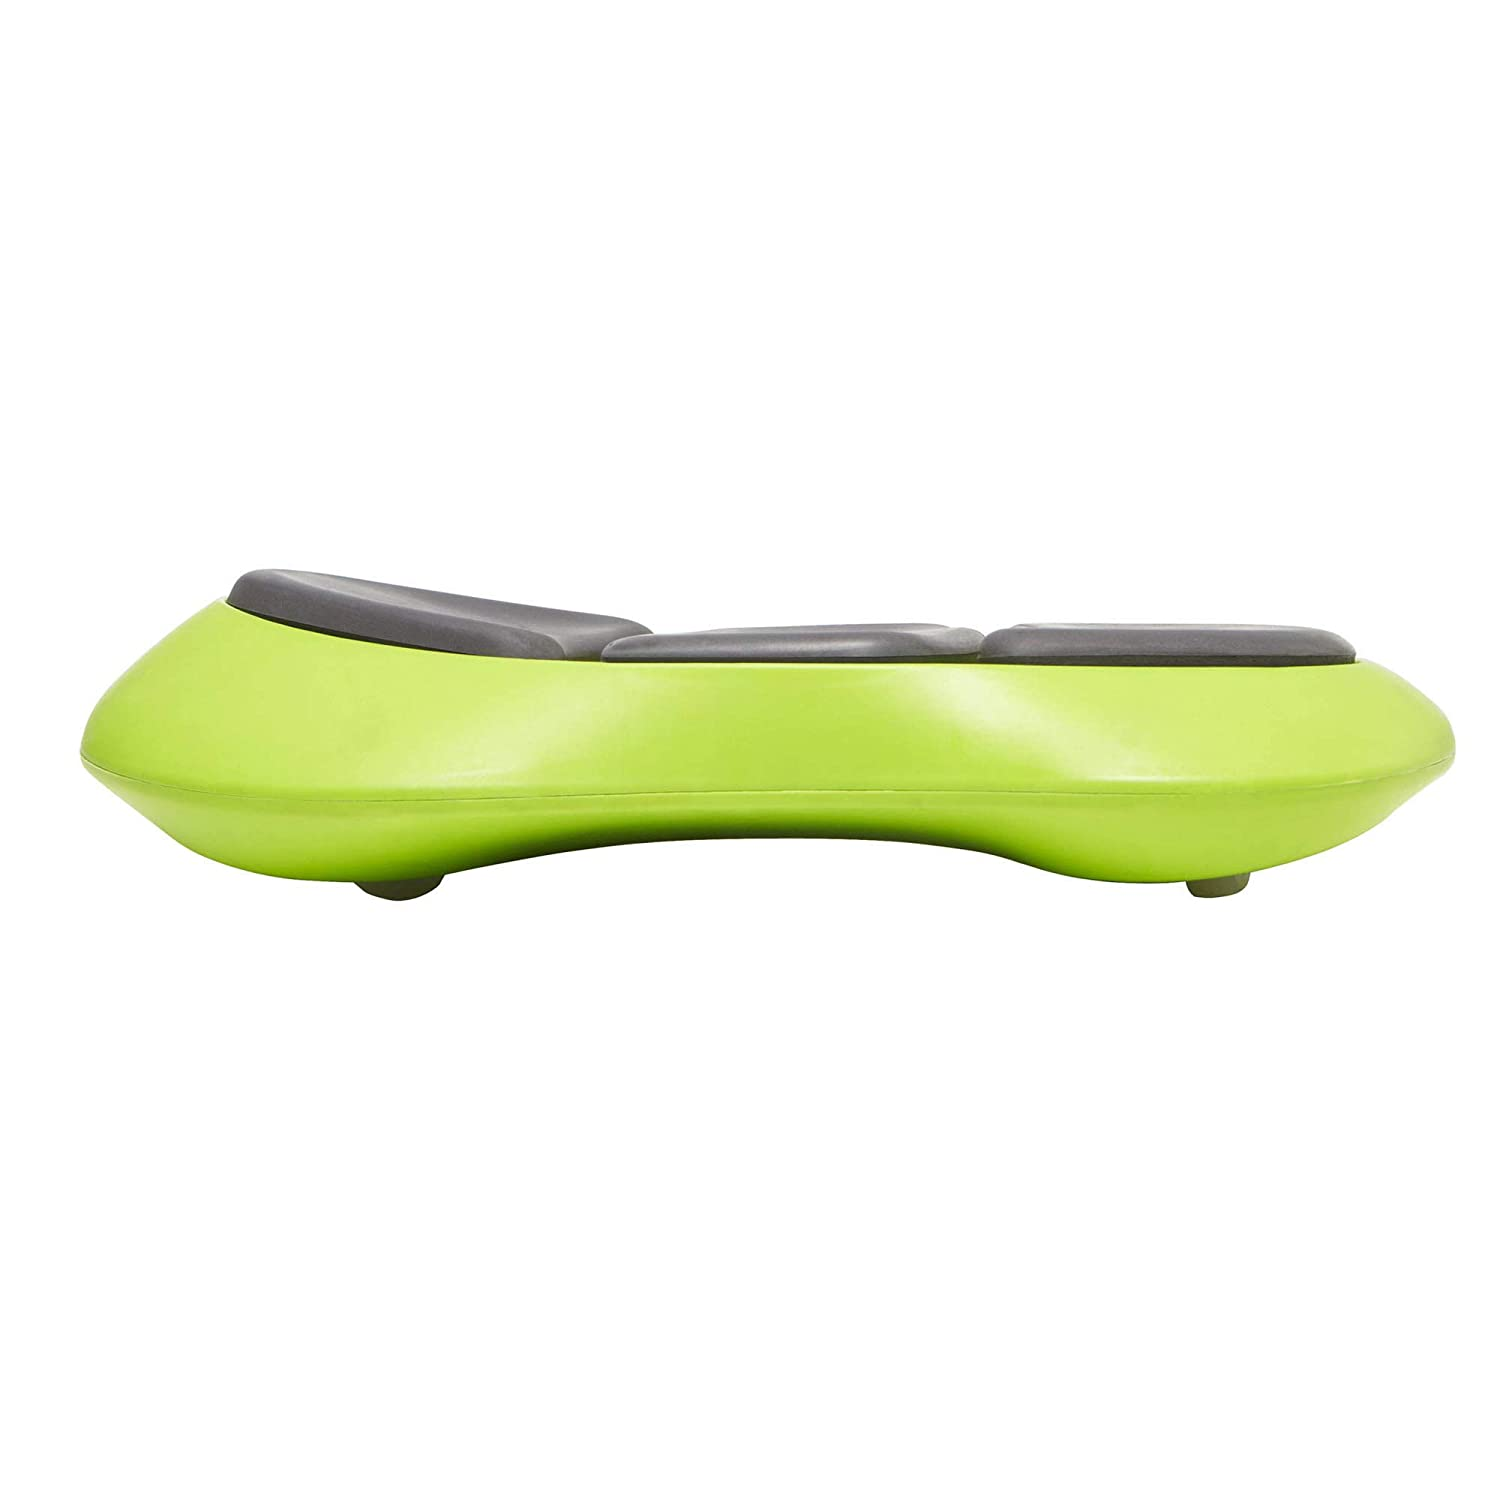 Image of Baby Gonge AEPG2168 Floor Surfer, Lime/Gray